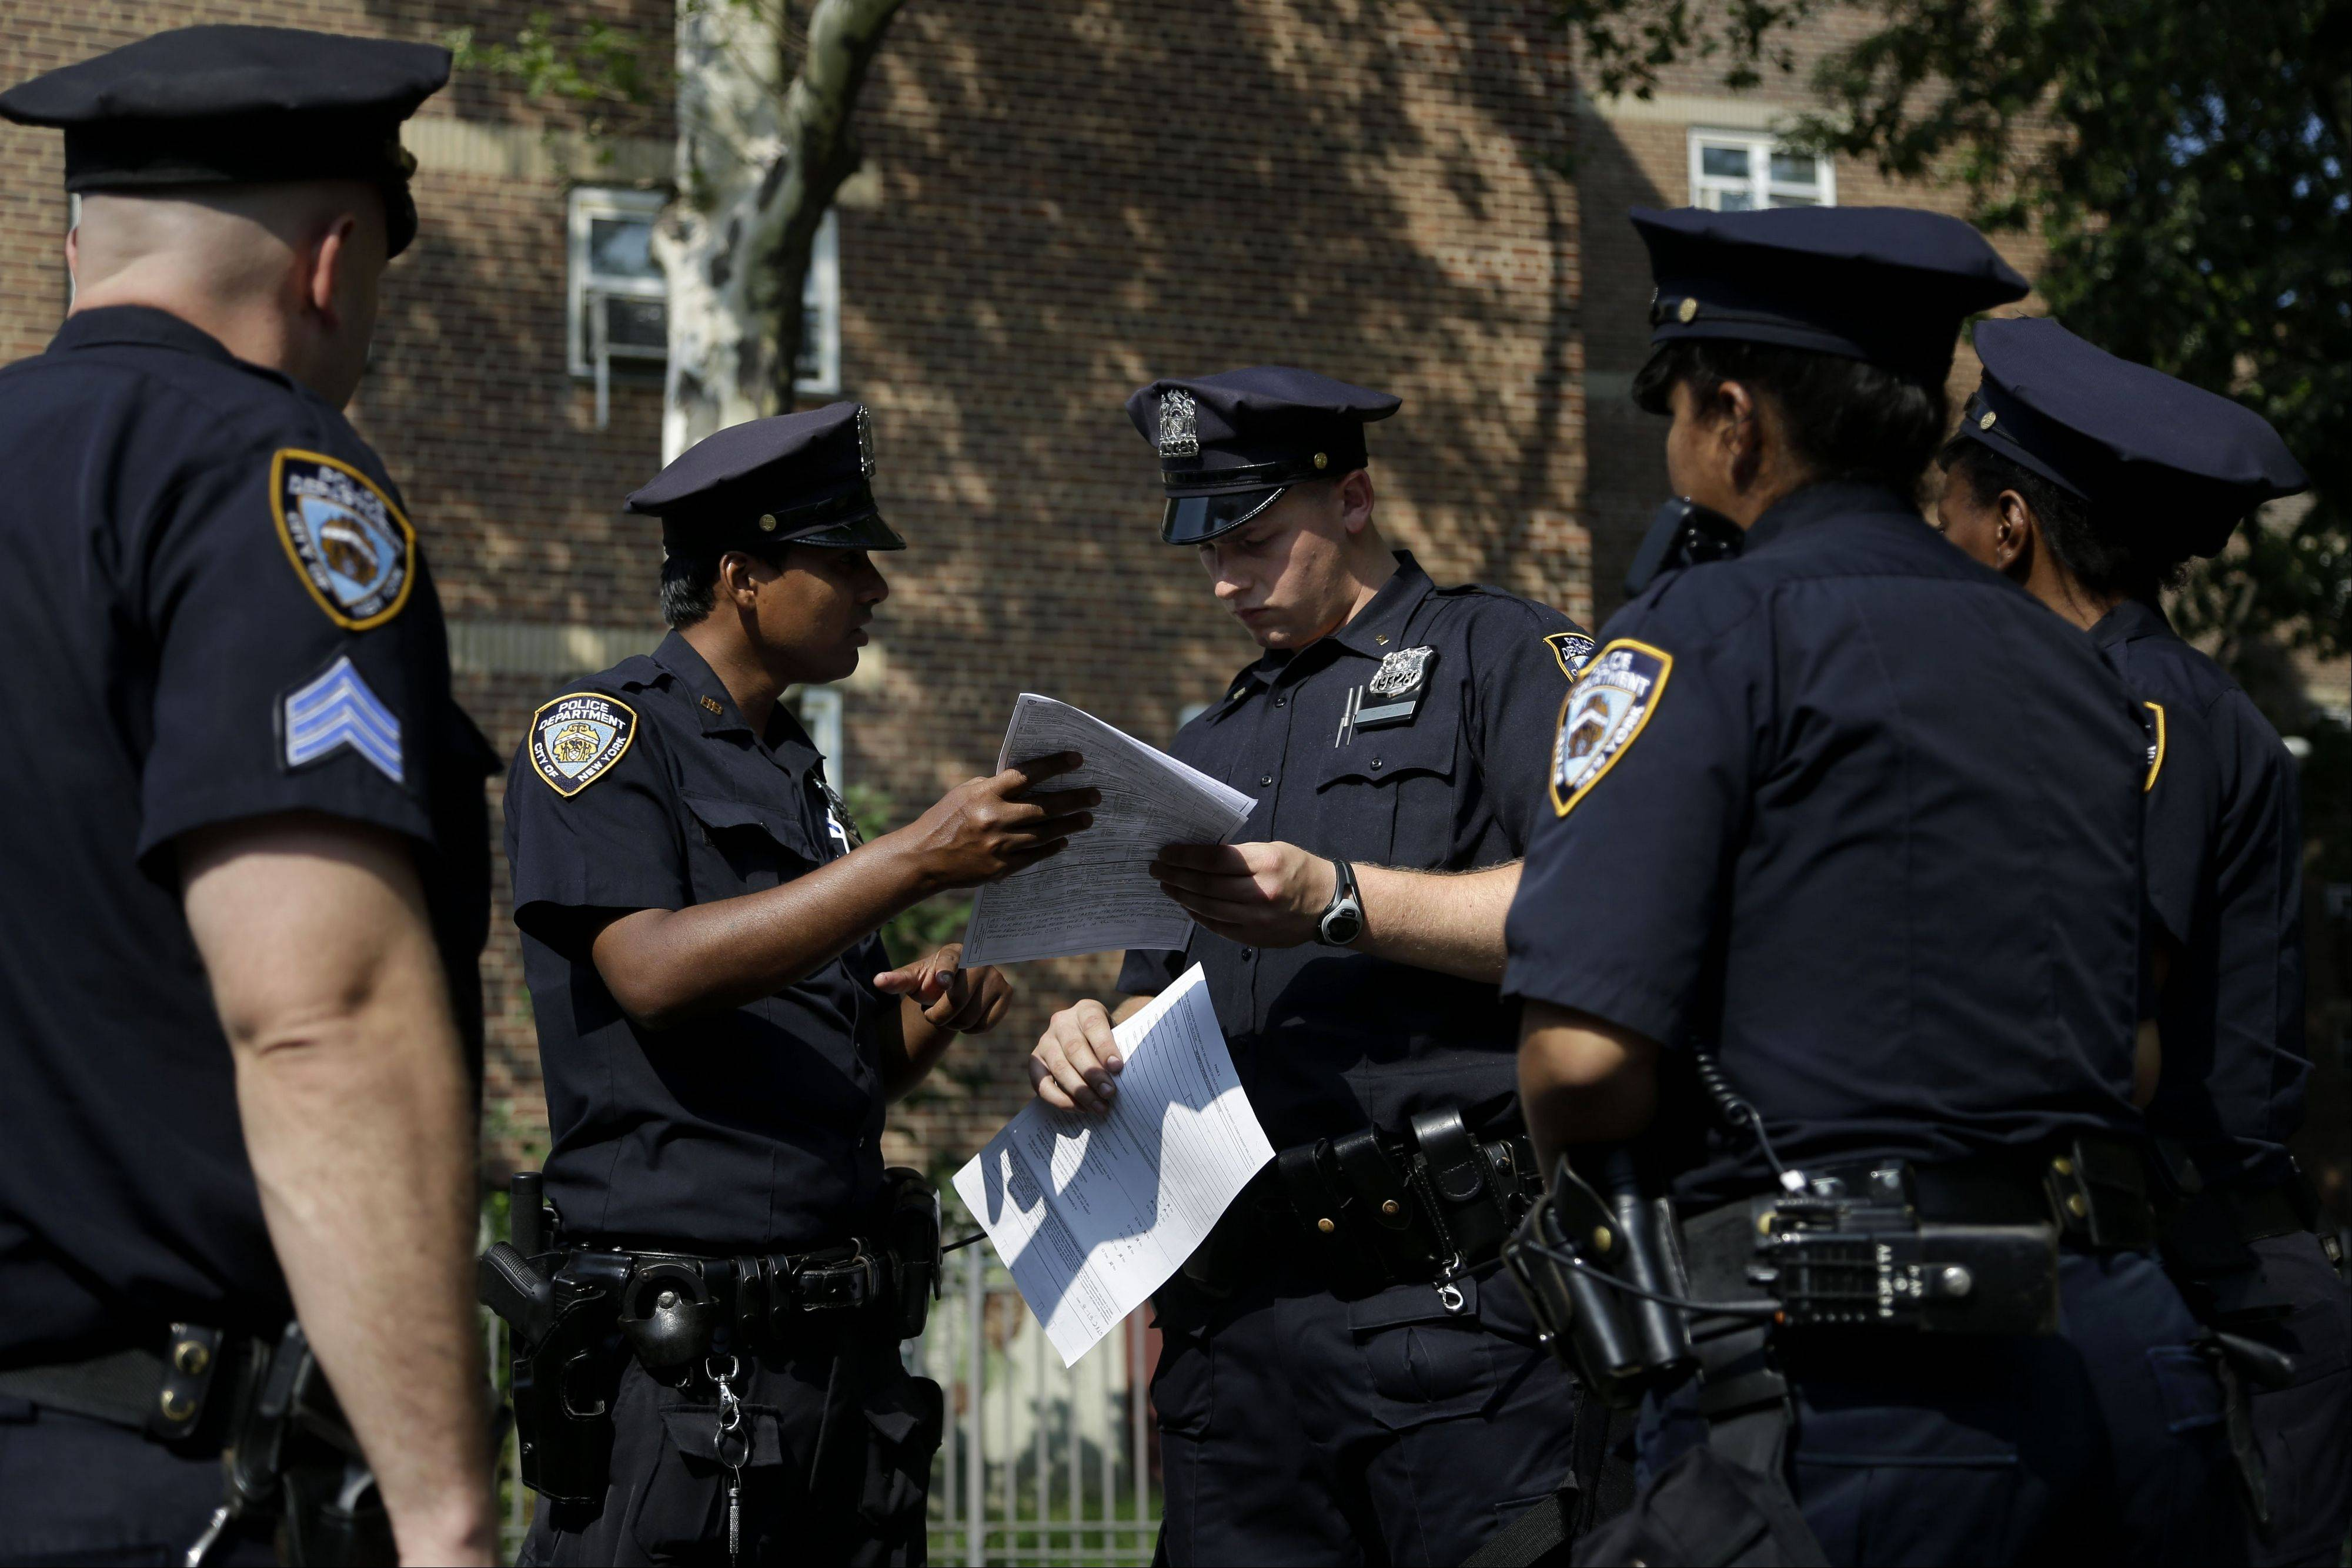 A federal appeals court block of a judge�s ruling that found the New York Police Department�s stop-and-frisk policy discriminated against minorities may be short lived, depending on the outcome of next week�s mayoral election.